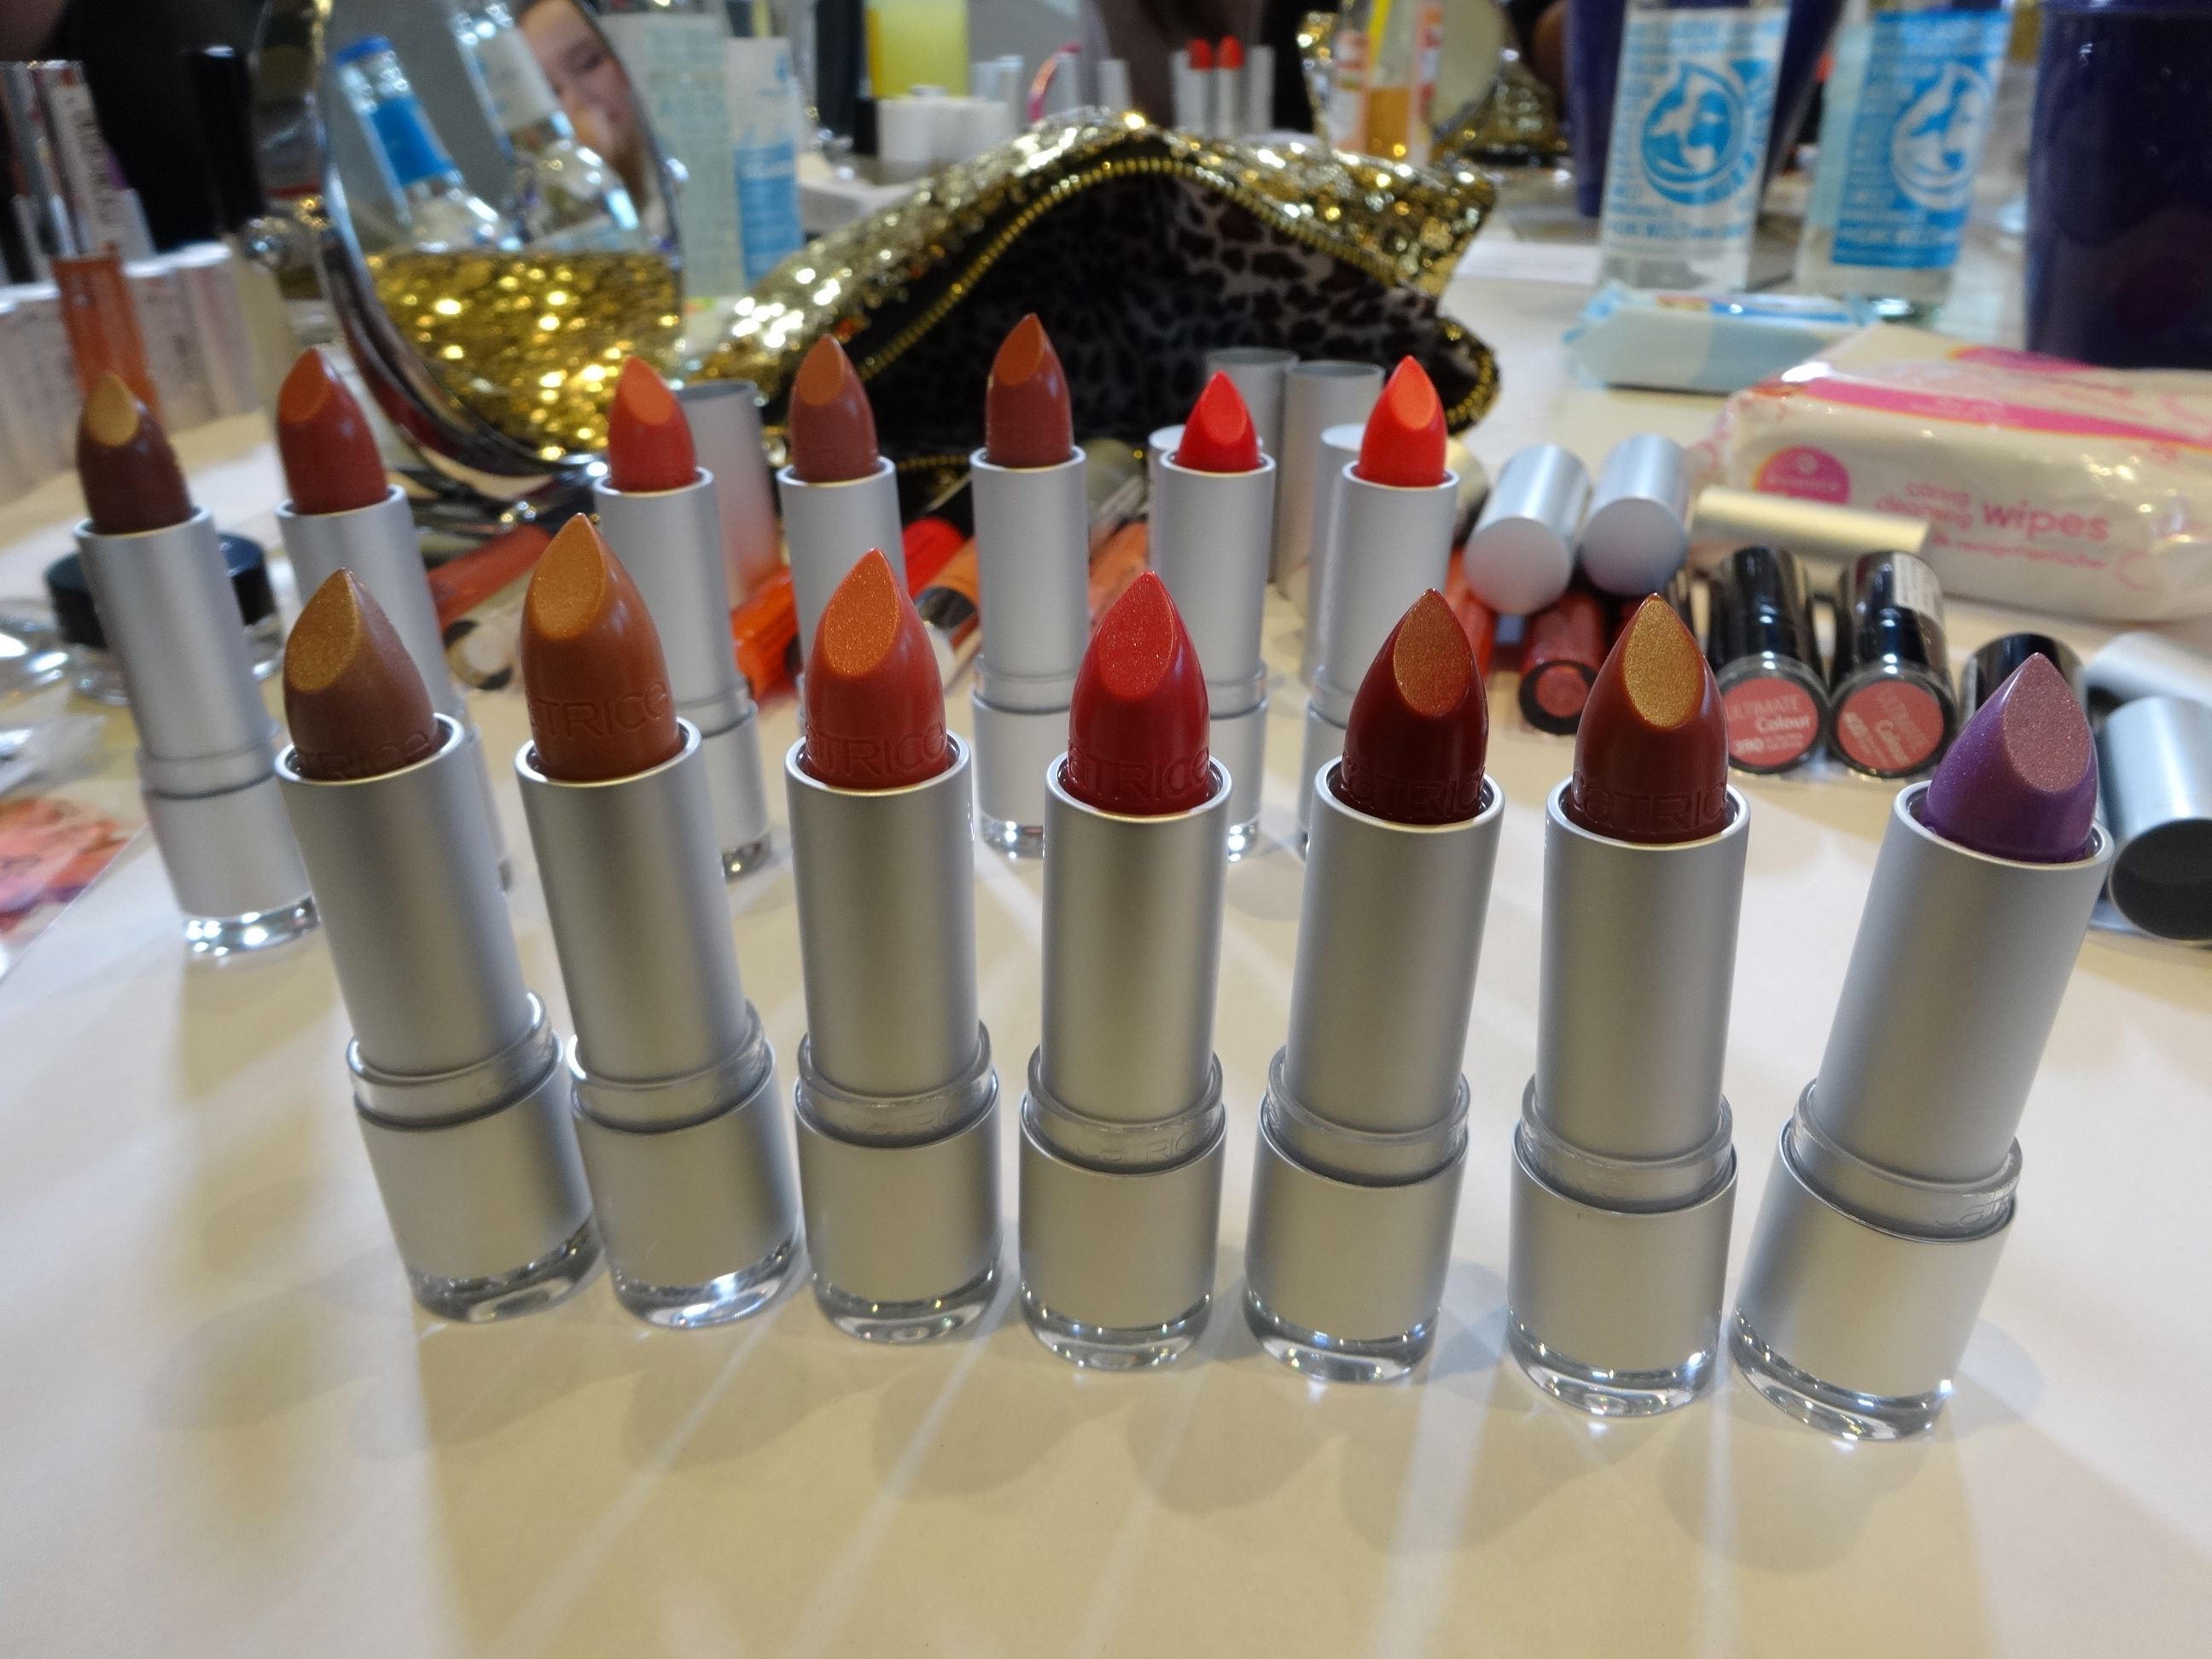 Lippenstifte - Luminous Lips - lipsticks